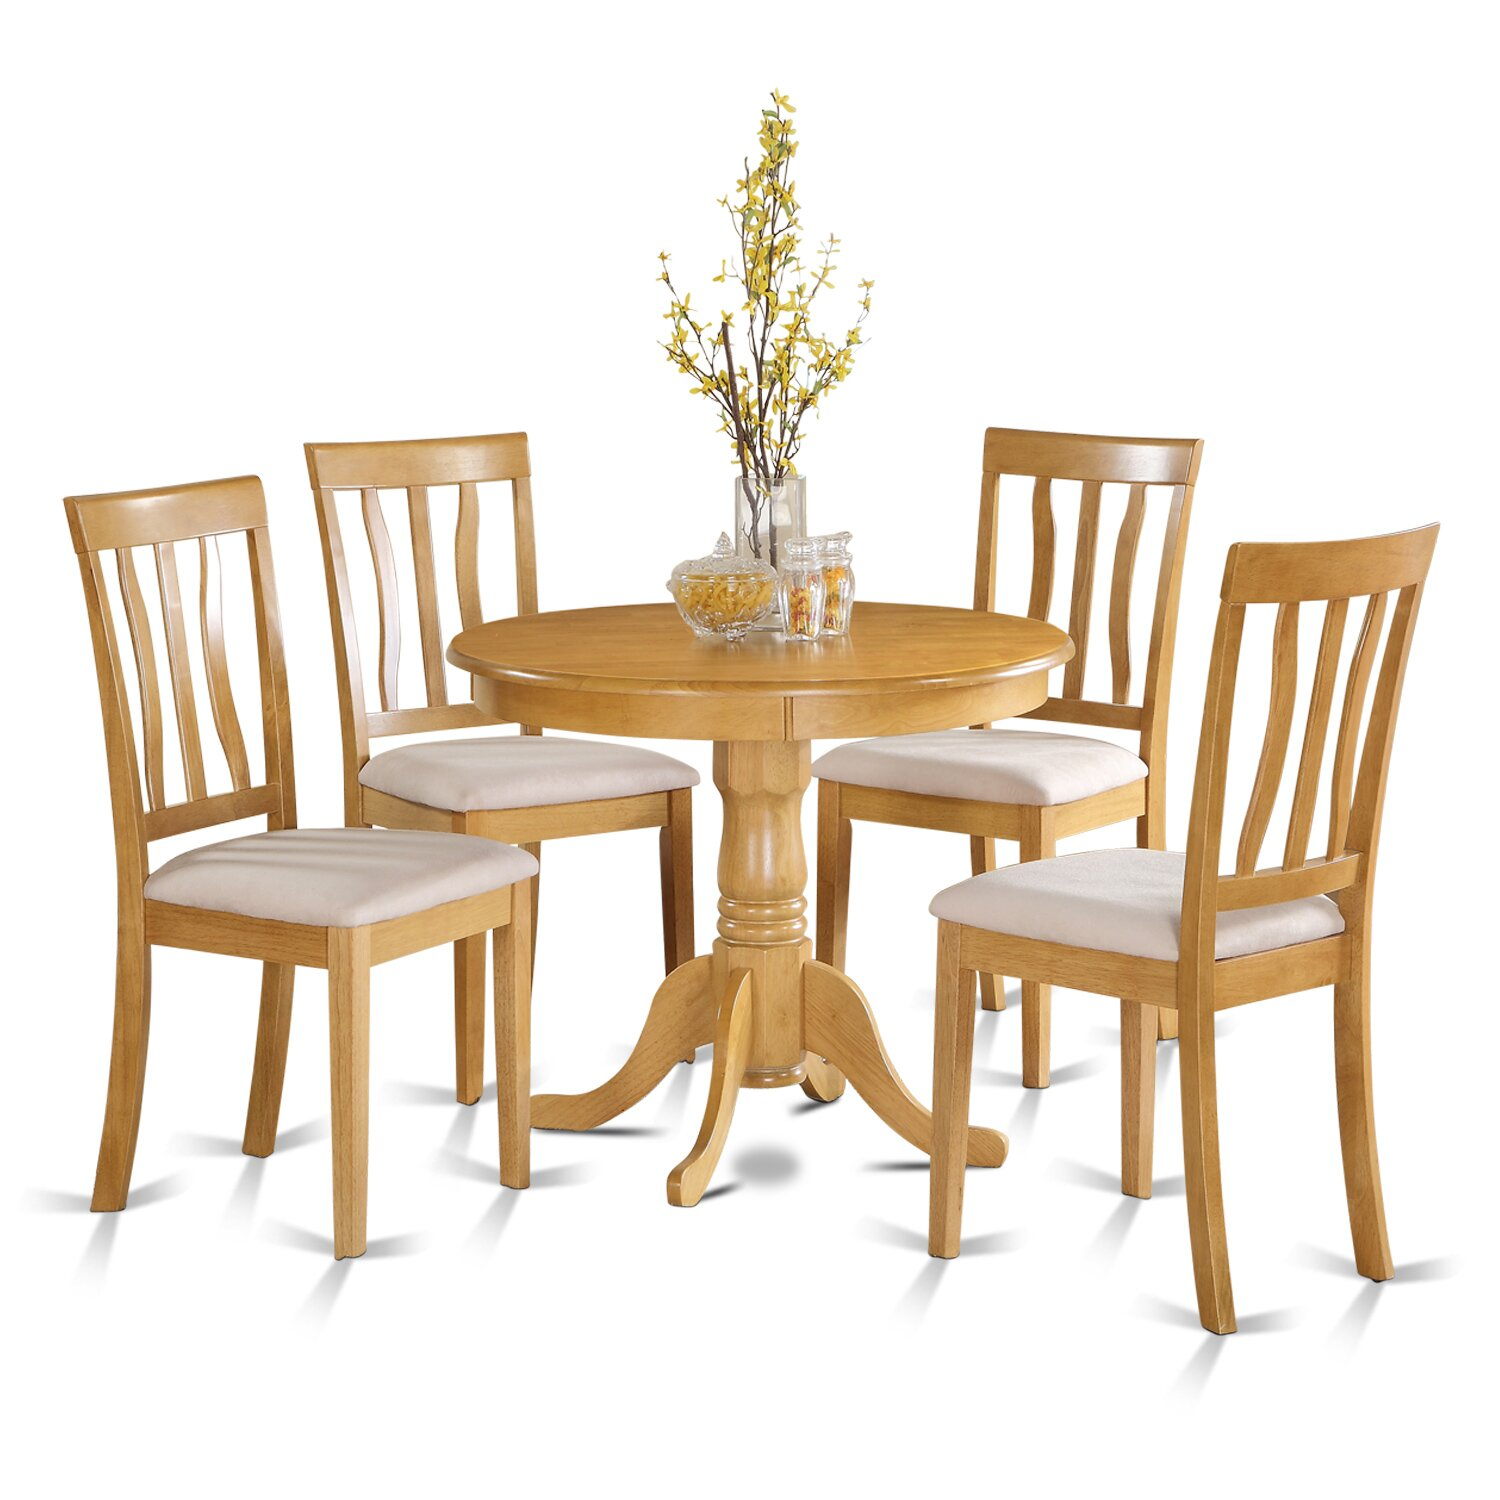 Wooden importers 5 piece dining set reviews wayfair for Small dining set with bench